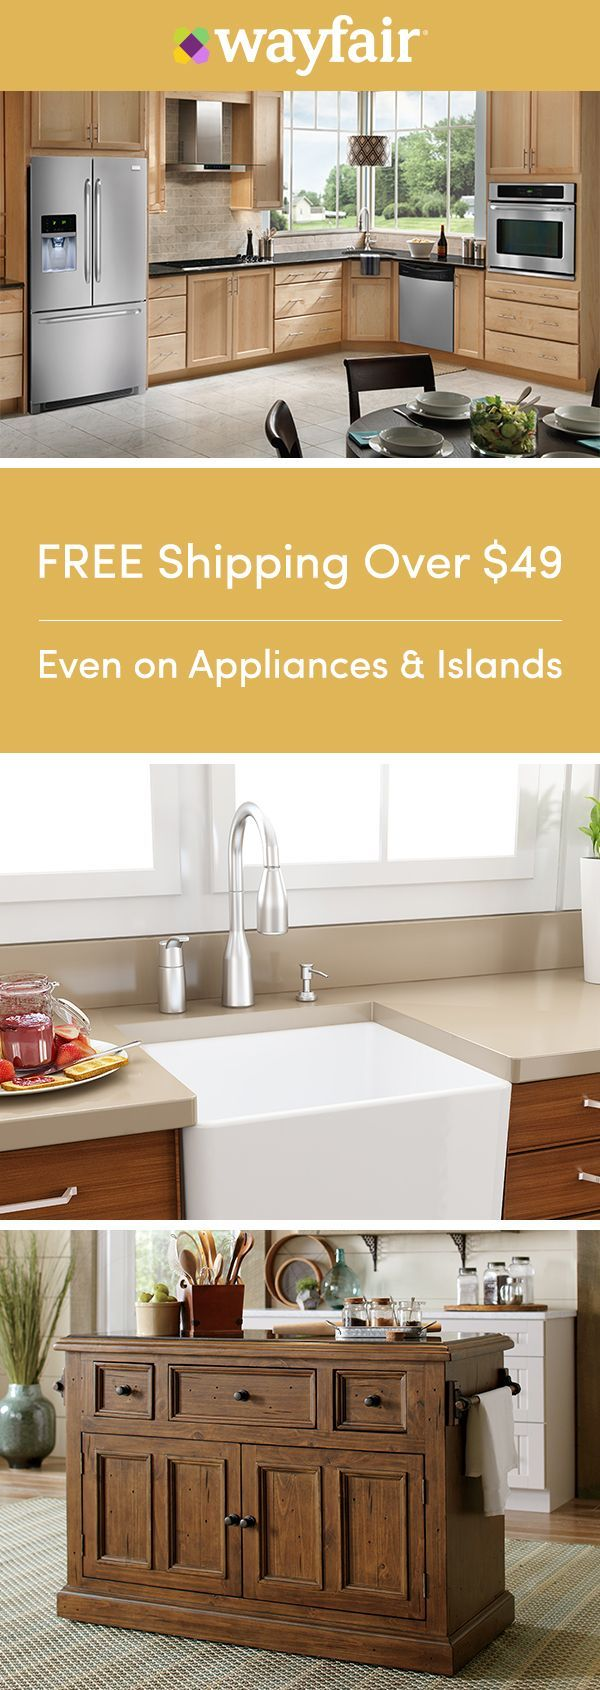 Sign up for access to exclusive sales, all at up to 70% OFF! Get your kitchen in tip-top shape with everything you need for an easy reno. From backsplash to updated fixtures and small-space solutions, you can get it all at the best price possible and in a style you love. To top it off, we're offering FREE shipping on all orders over $49.